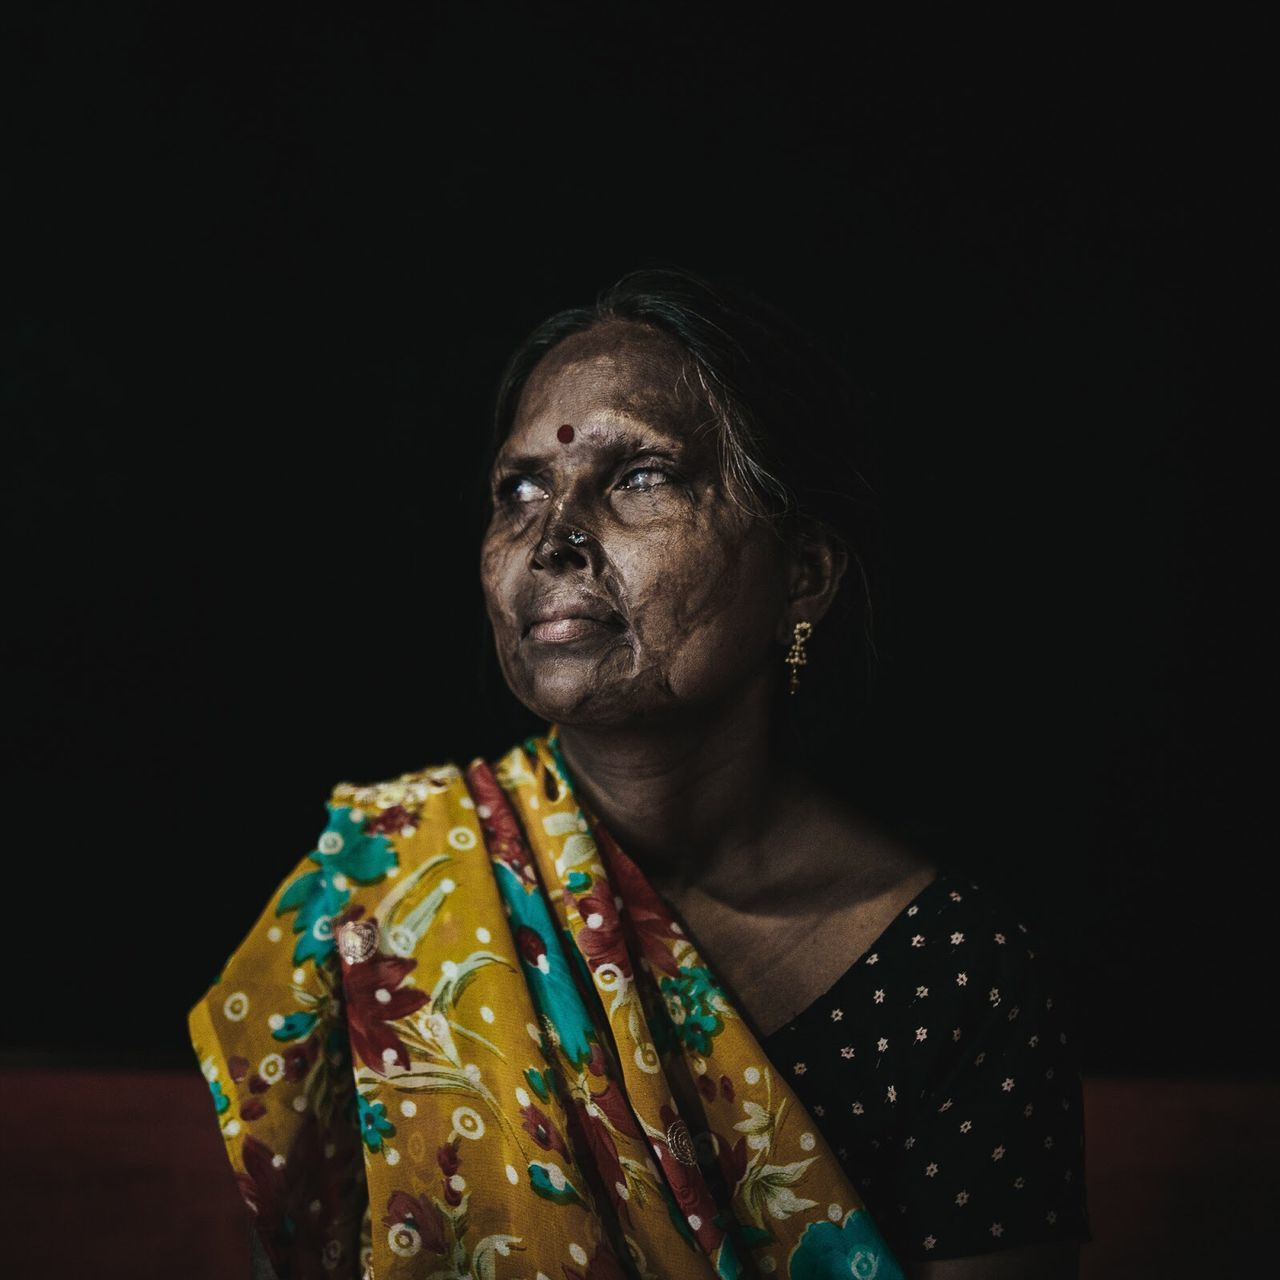 The Photojournalist - 2016 EyeEm Awards Geeta was lying on her cot, her two small daughters cradled at each side. The night was like any other for the 23-year-old mother living with her husband and her in-laws in a slum in Agra, India. But Geeta knew something was wrong. Things with her husband had become unusually tense after the birth of her daughters. Geeta felt it had something to do with her husband desperately wanting a son -- as many Indian men do. The lack of a son could mean that he would lose his rights to family assets, which could be claimed by other family members. The beatings started around that time. Often, he would come home drunk and physically assault her. Tonight, though, the house was quiet. Geeta shut her eyes and tried to go to sleep. In an instant, her face was consumed with unbearable pain. Her daughters were screaming. Geeta's husband had thrown acid on all three of them as they slept. Despite the pain, Geeta rushed herself and her daughters to the nearest police station. She still remembers every detail of that night, more than two decades ago, that changed the course of her life. Weeks later, one of her daughters succumbed to her injuries and died. The other daughter, Neta, then 3, would grow up in shameful isolation, without a face and nearly blind.